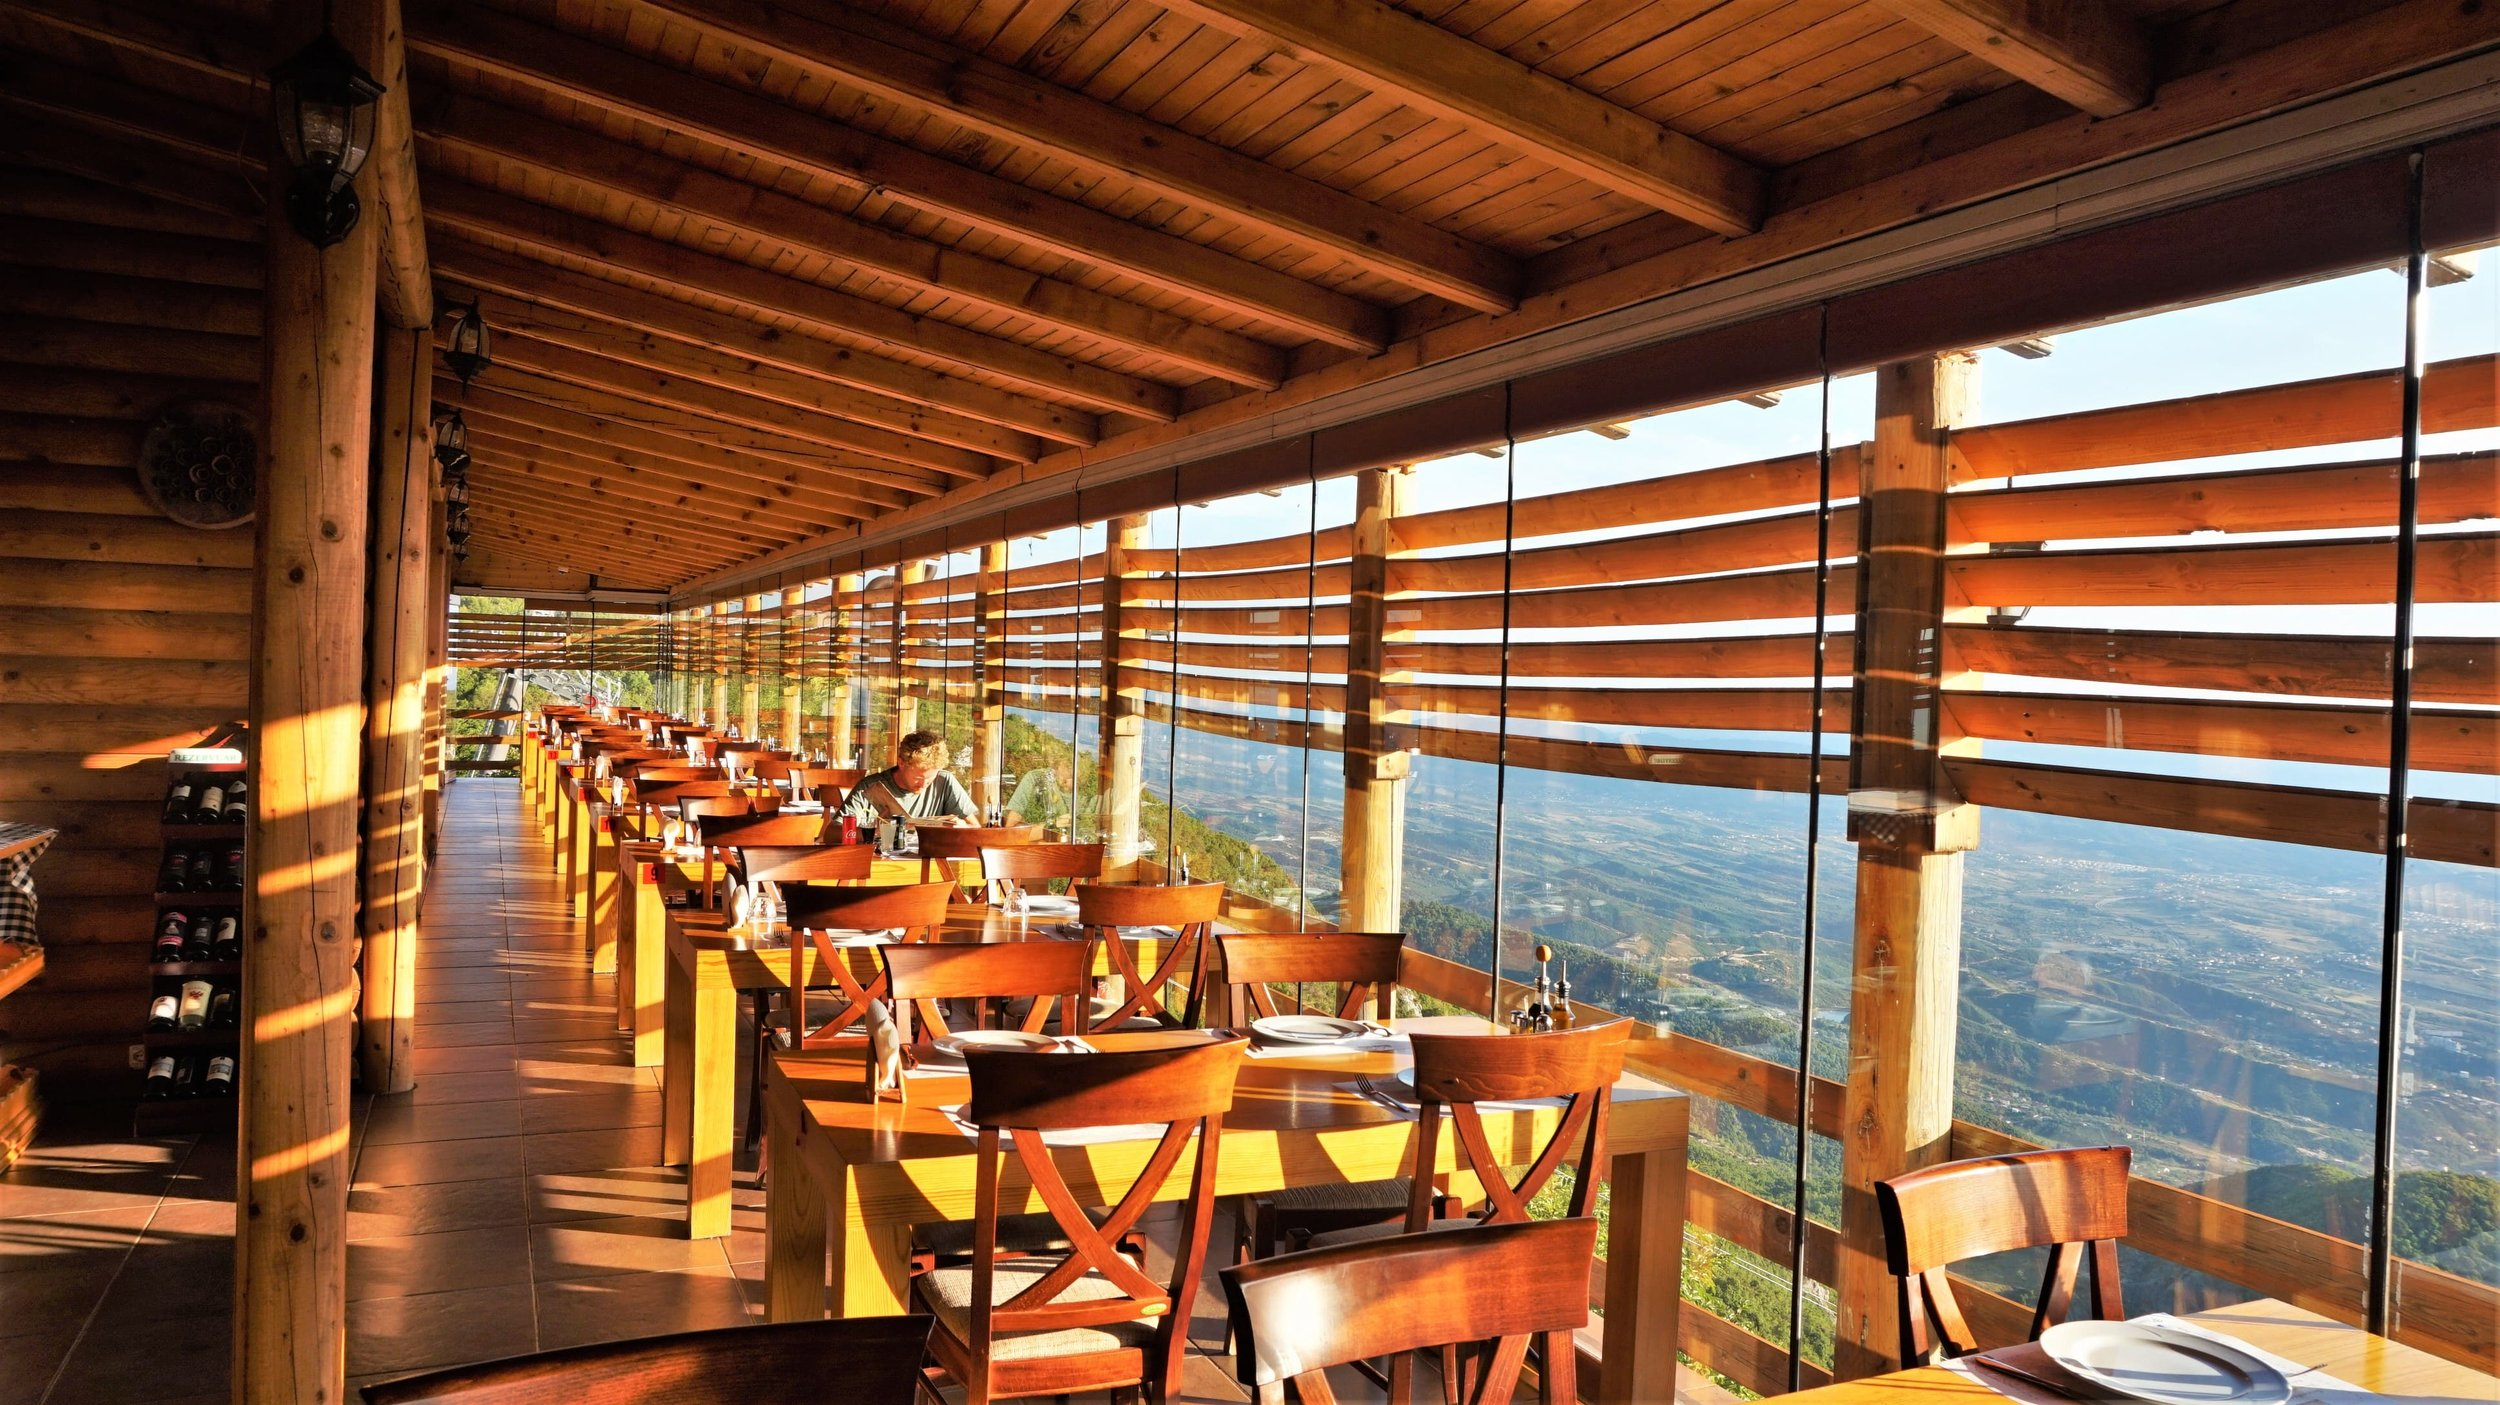 Another great place to eat wit some beautiful views from mount Dajti.